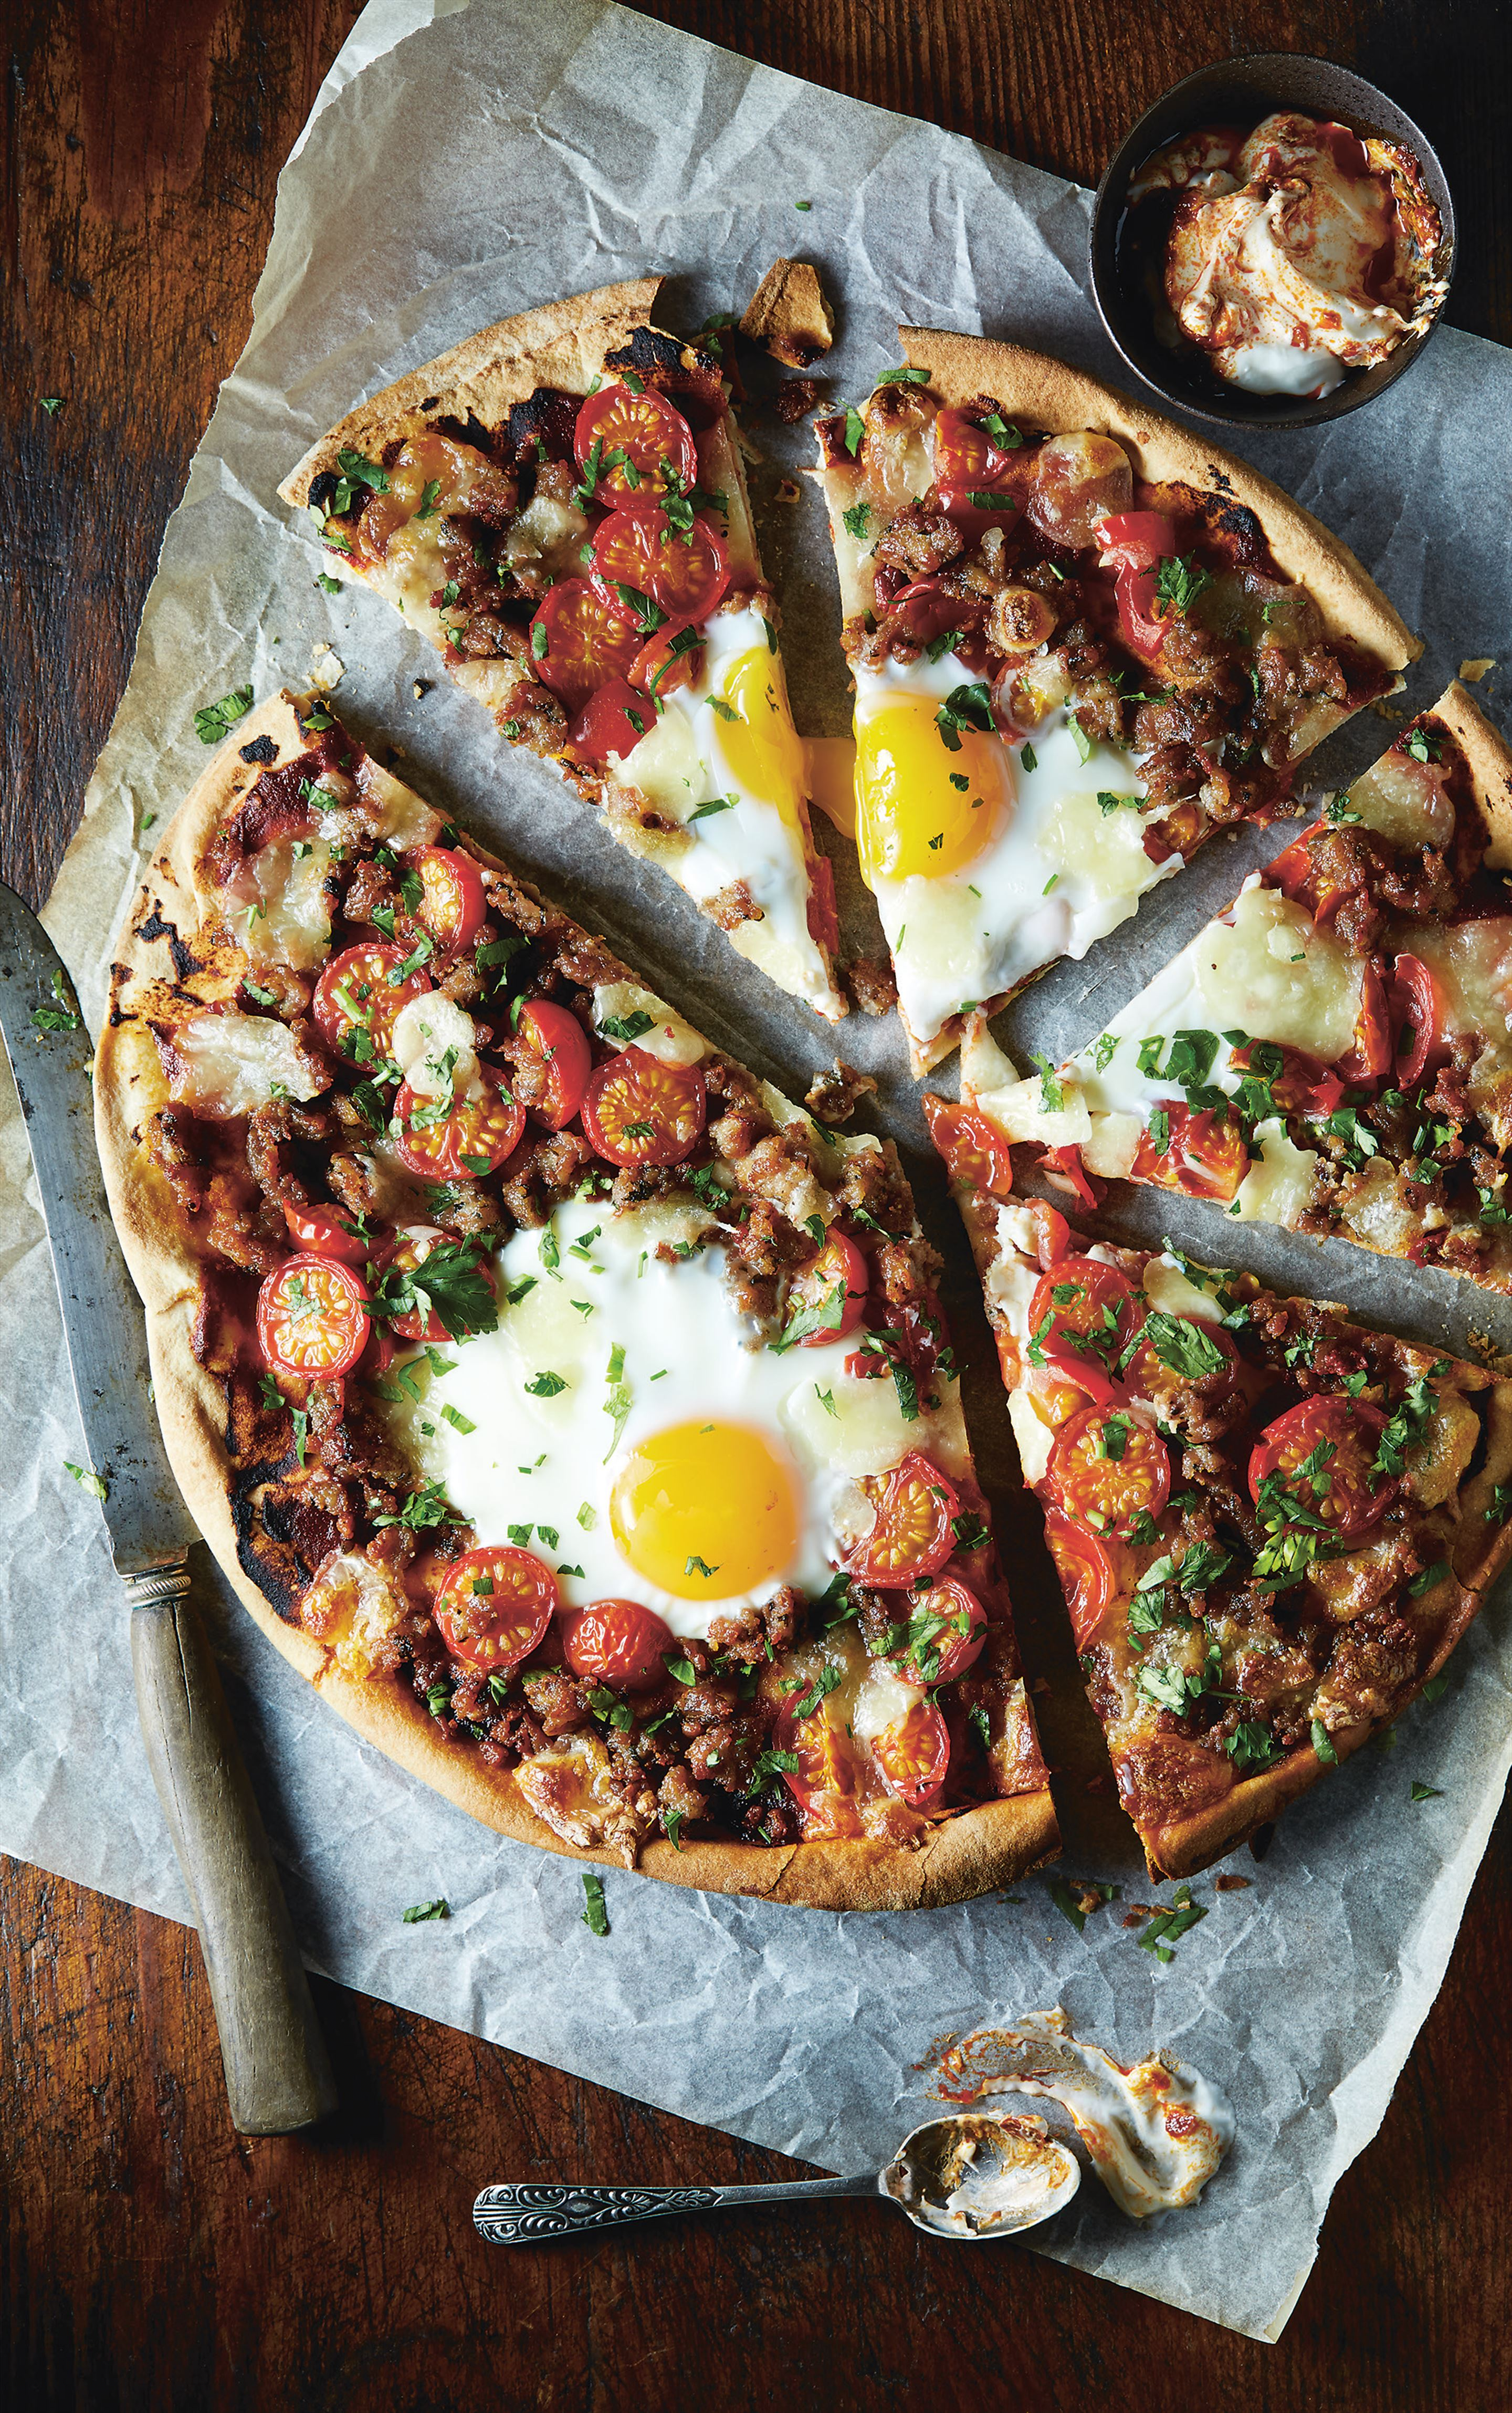 Sausage flatbread with egg and harissa yoghurt